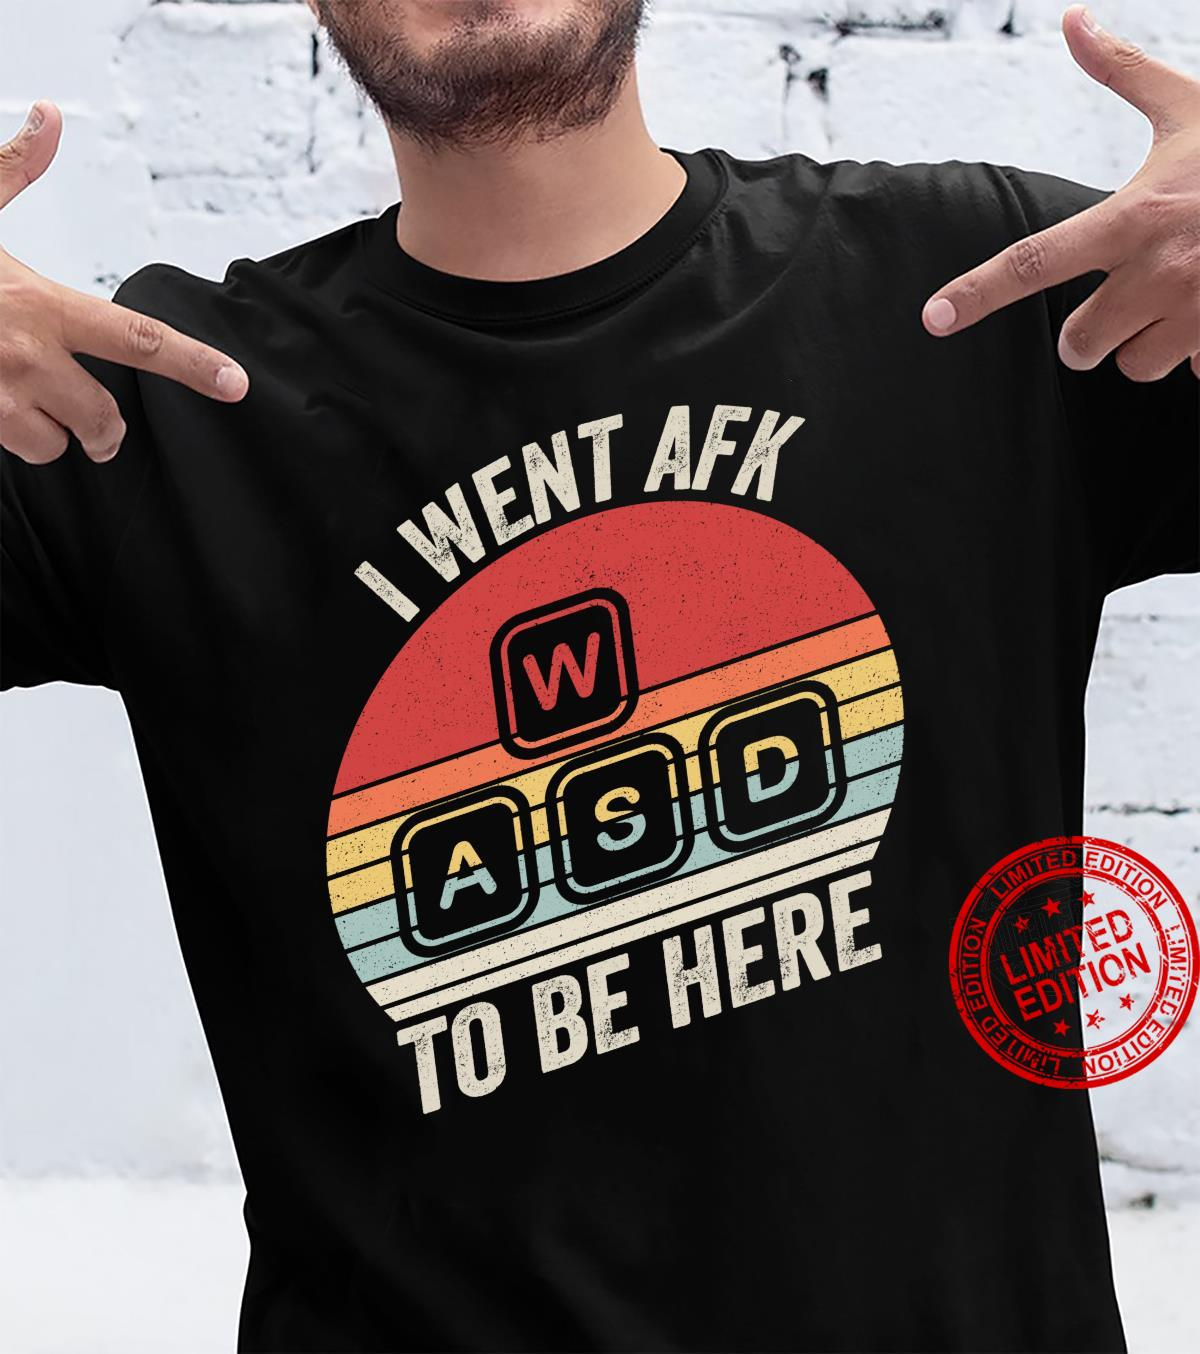 Vintage Retro I Went AFK To Be Here PC Gamer Shirt